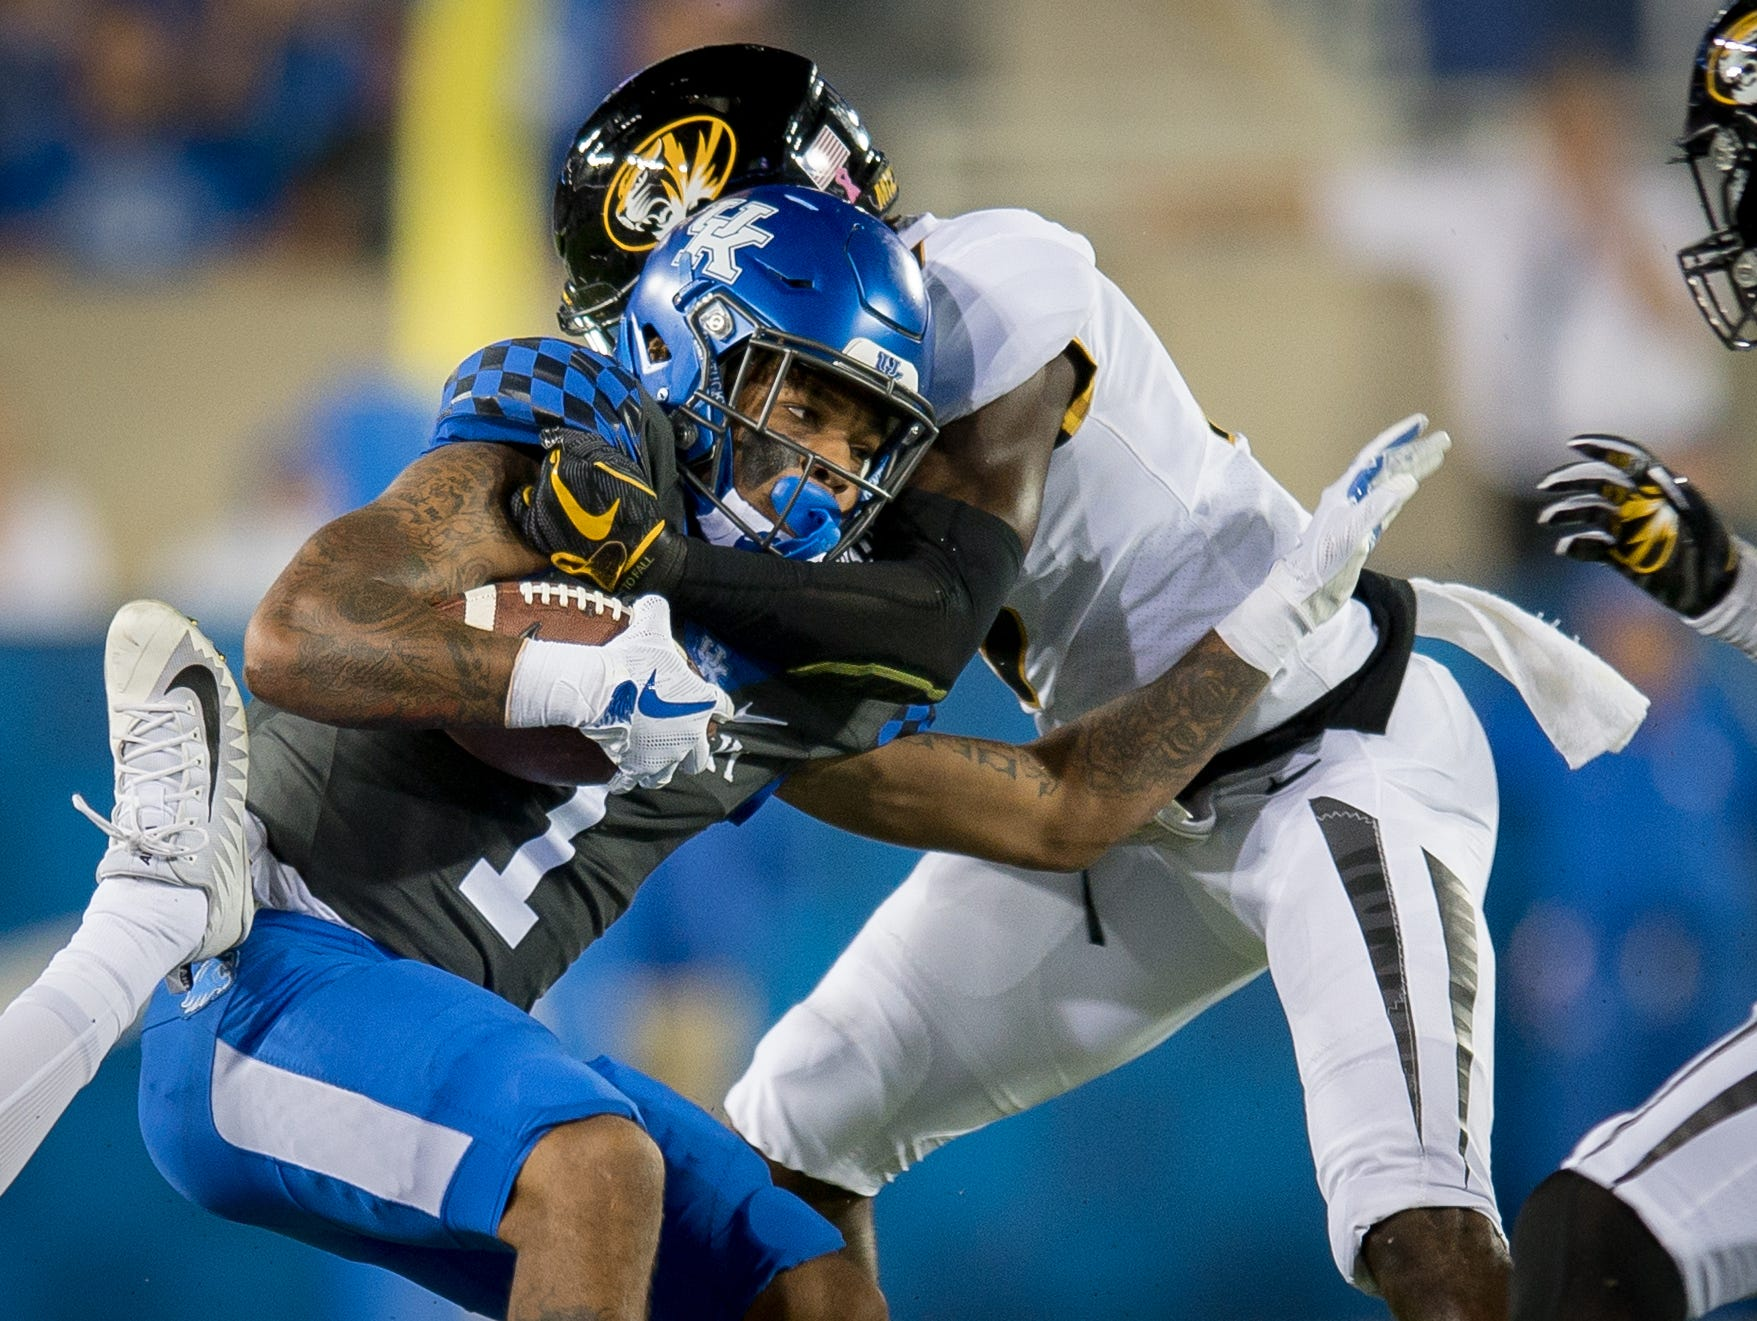 Kentucky Wildcats wide receiver Lynn Bowden Jr. (1) is tackled by several Missouri Tigers defenders during the game at Kroger Field on the campus of the University of Kentucky in Lexington, Saturday, Oct. 7, 2017.